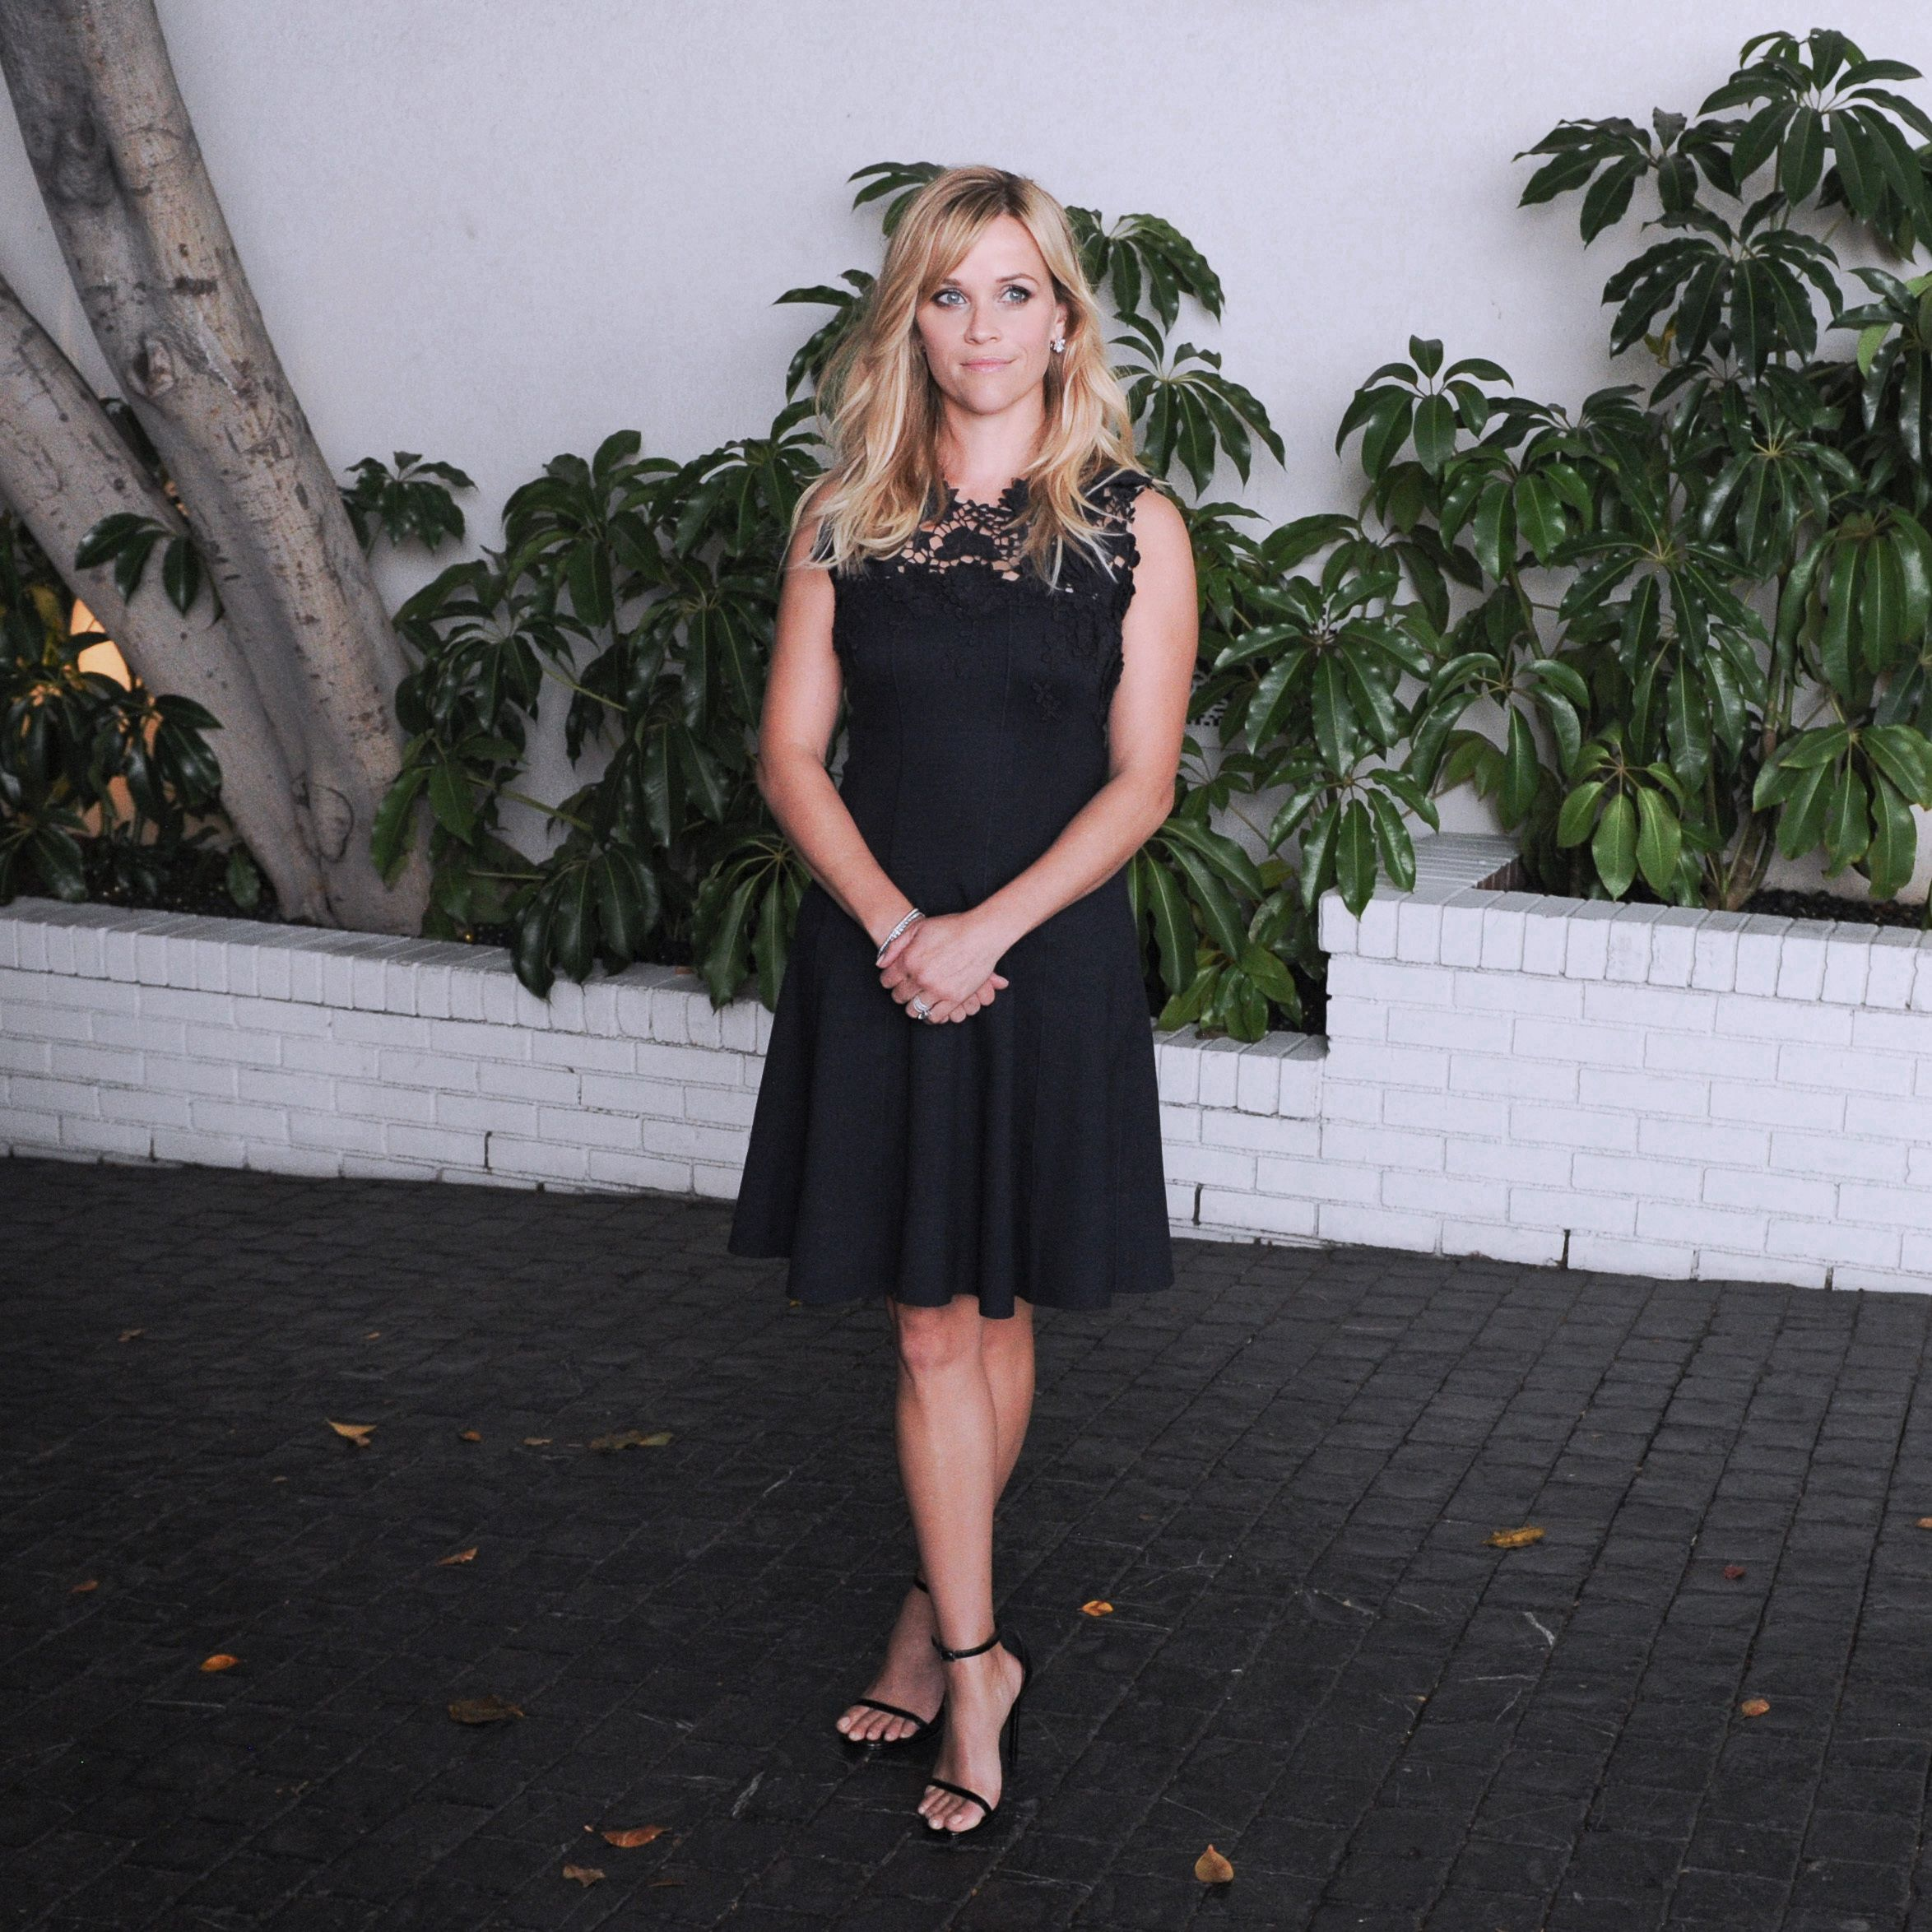 Reese_Witherspoon__17.jpg